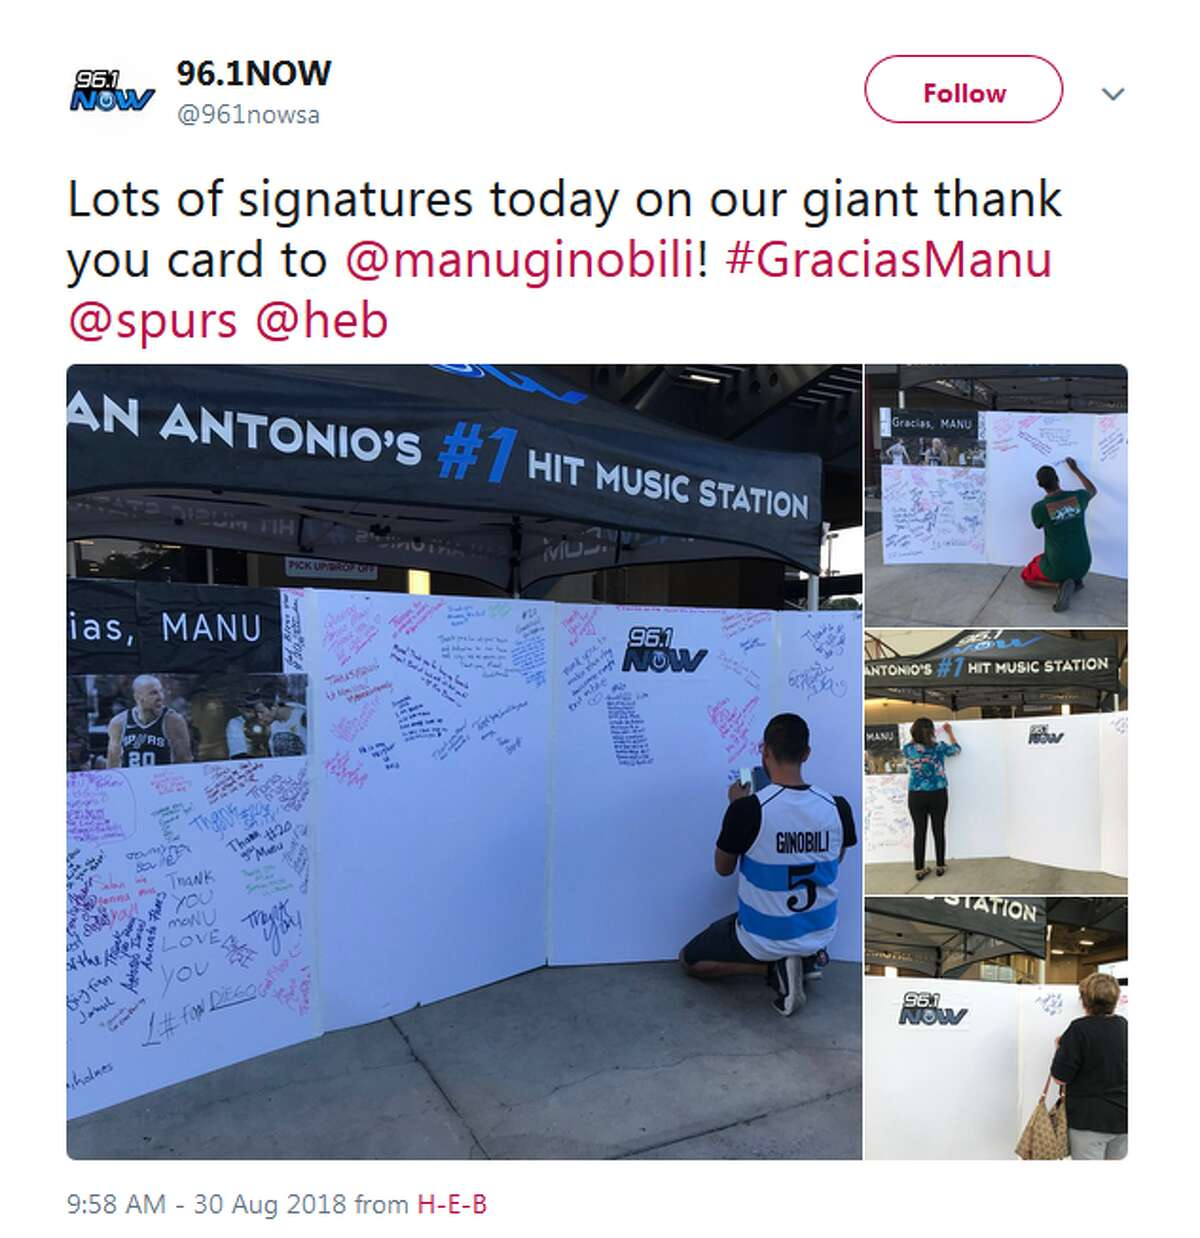 Return the favor and sign something for him Ginobili signed his fair share of merchandise for Spurs fans over the years -- give him your John Hancock and a special message on the giant card 96.1 Now provided.